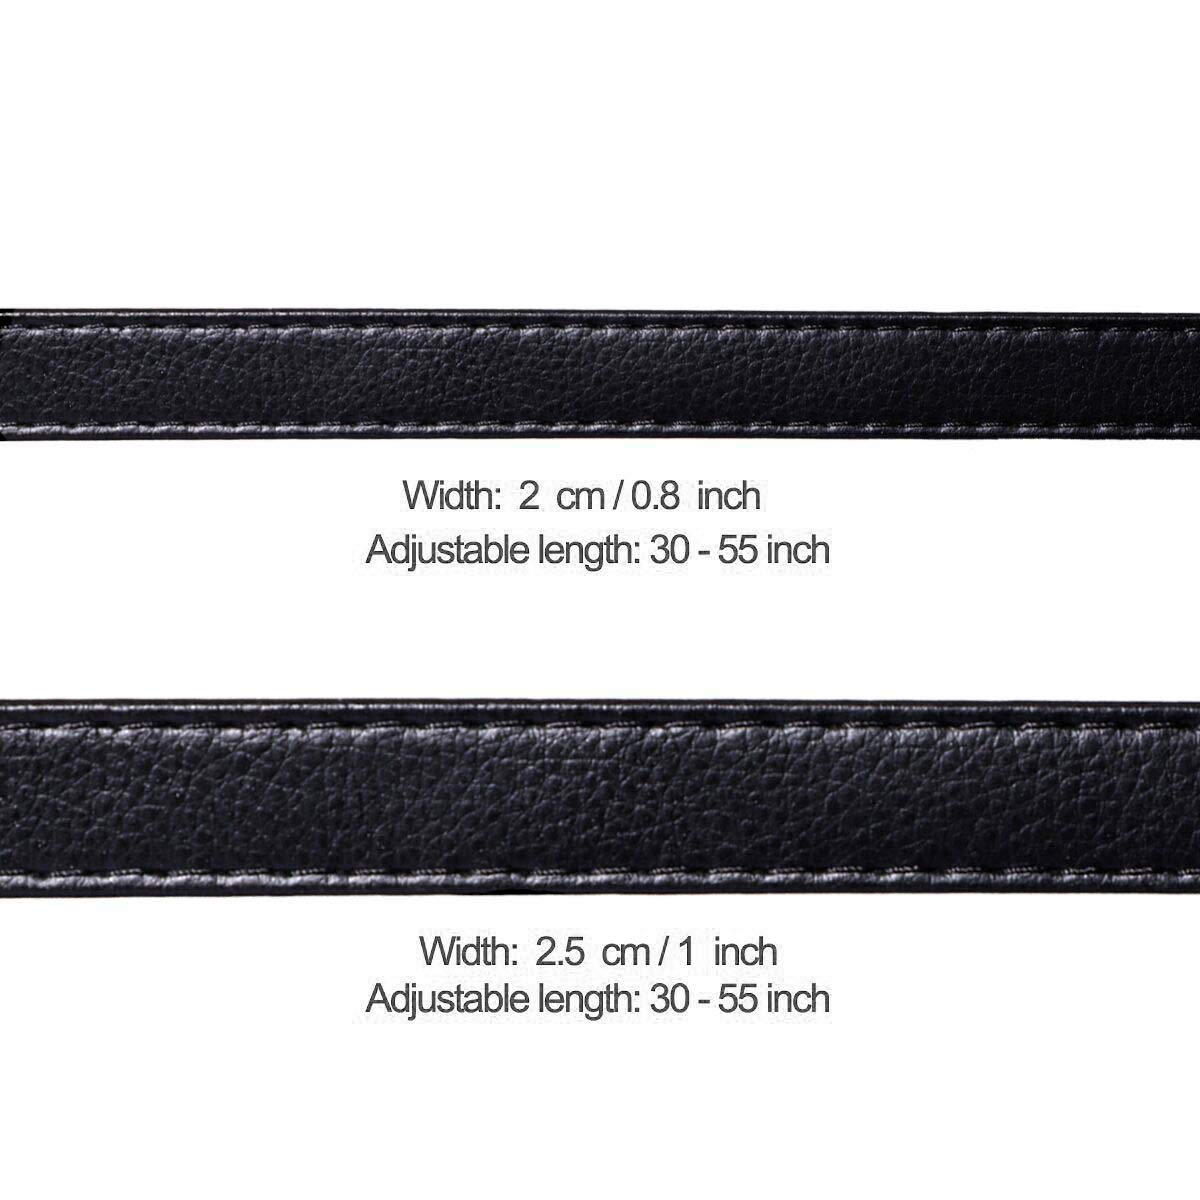 Purse Strap Replacement by Beaulegan Adjustable Microfiber Leather for Crossbody Bag or Handbag Black with Silver Clasp 34-59 Inch Long 0.8 Inch Wide